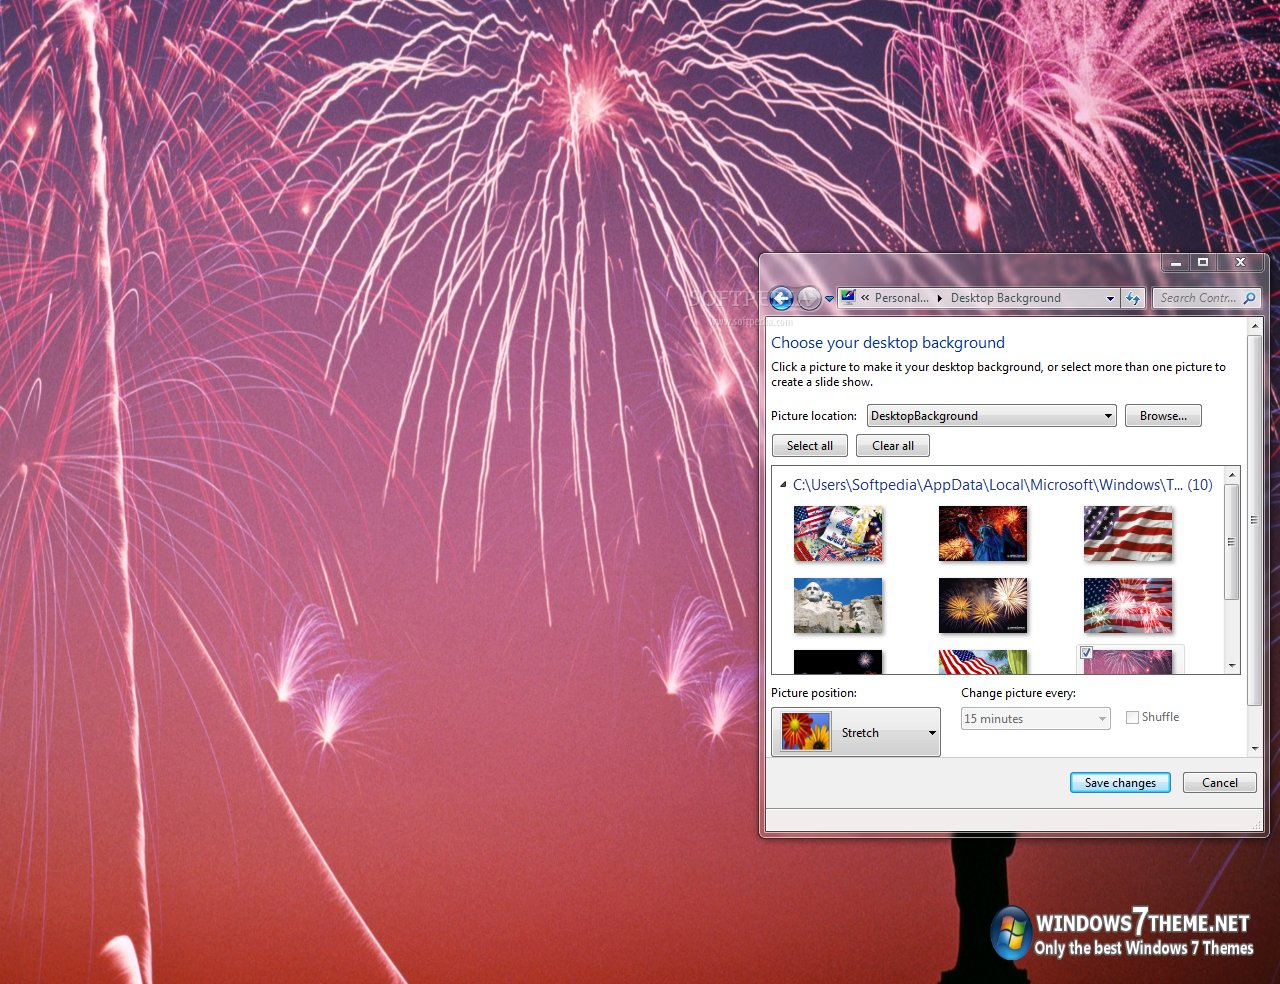 4th of july windows 7 theme with anthem this is a sample view of what